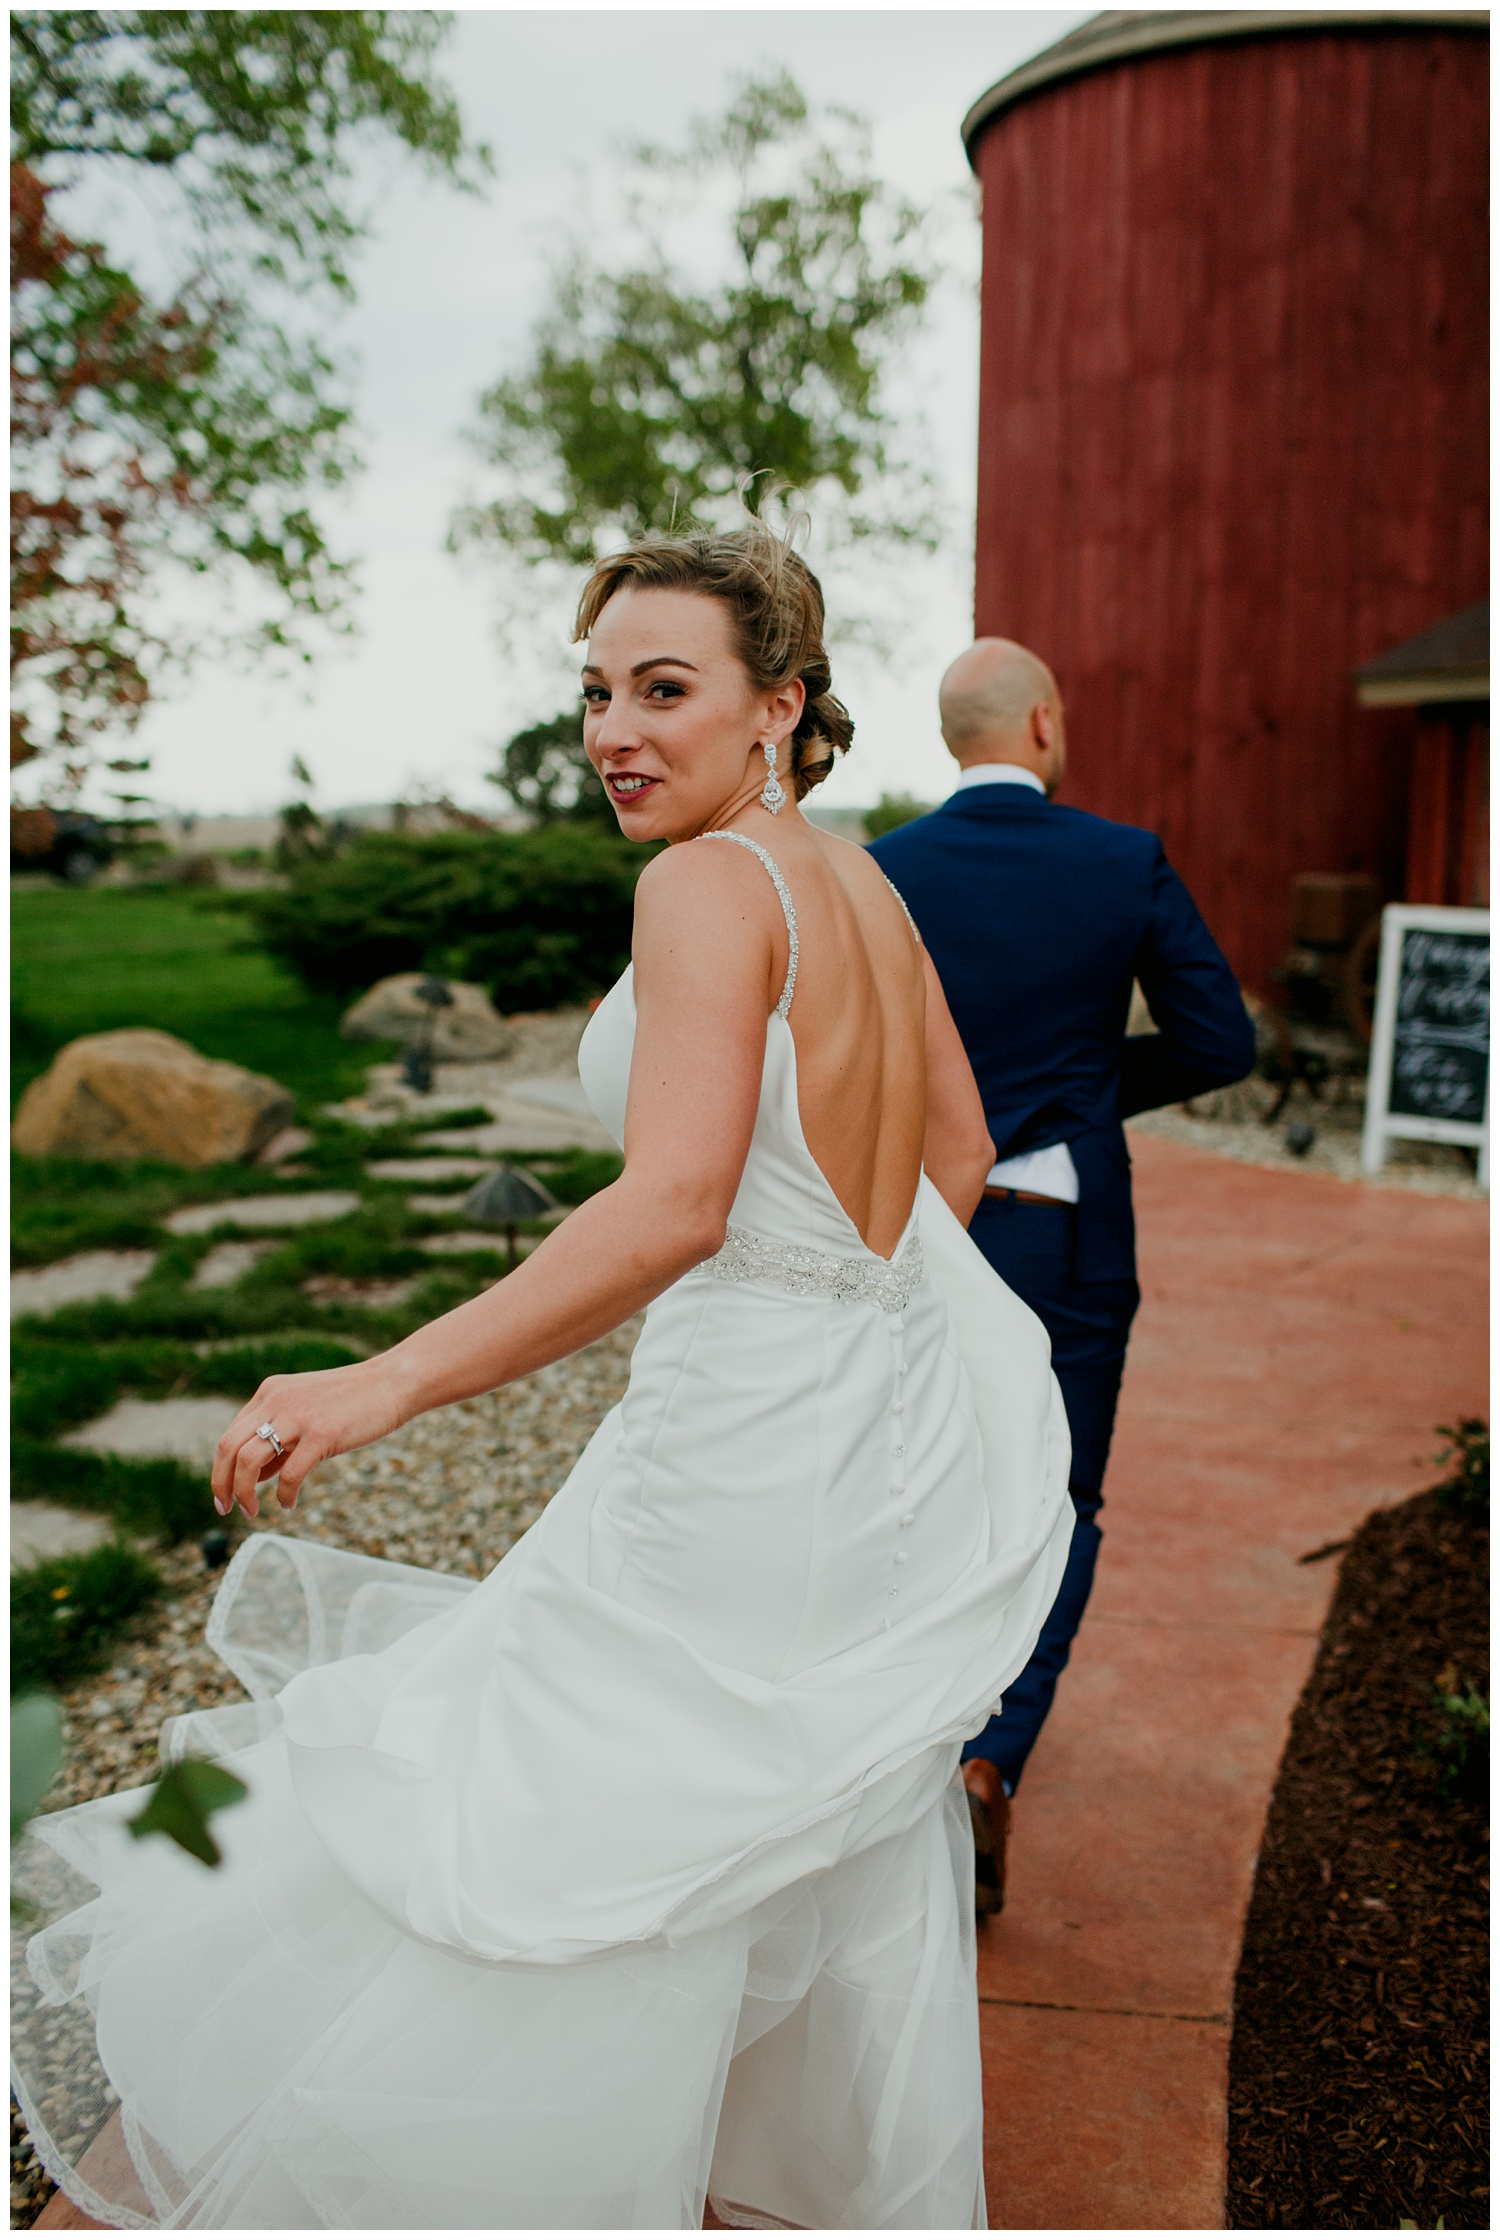 blissfulbarn threeoaks michigan wedding photography journeymandistillery101.jpg